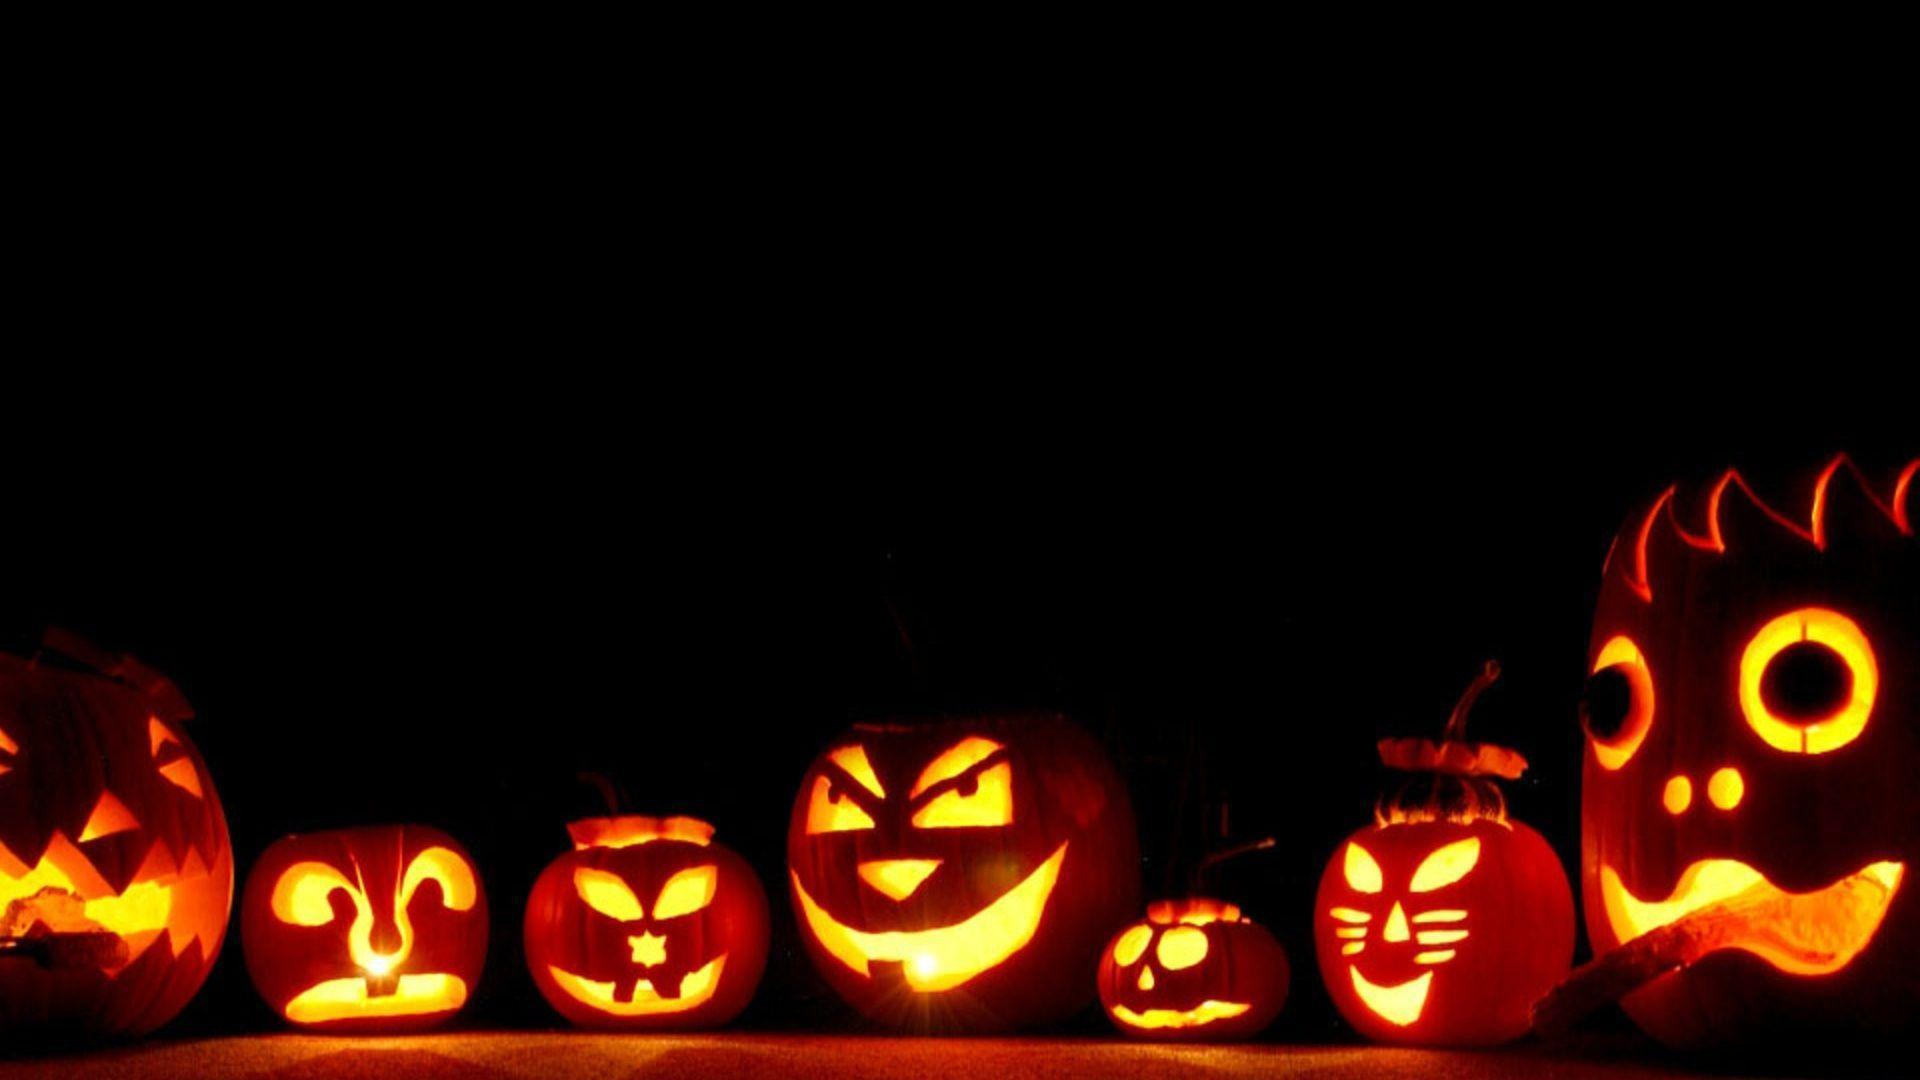 Free download Halloween Backgrounds   HD Wallpapers, Backgrounds ...